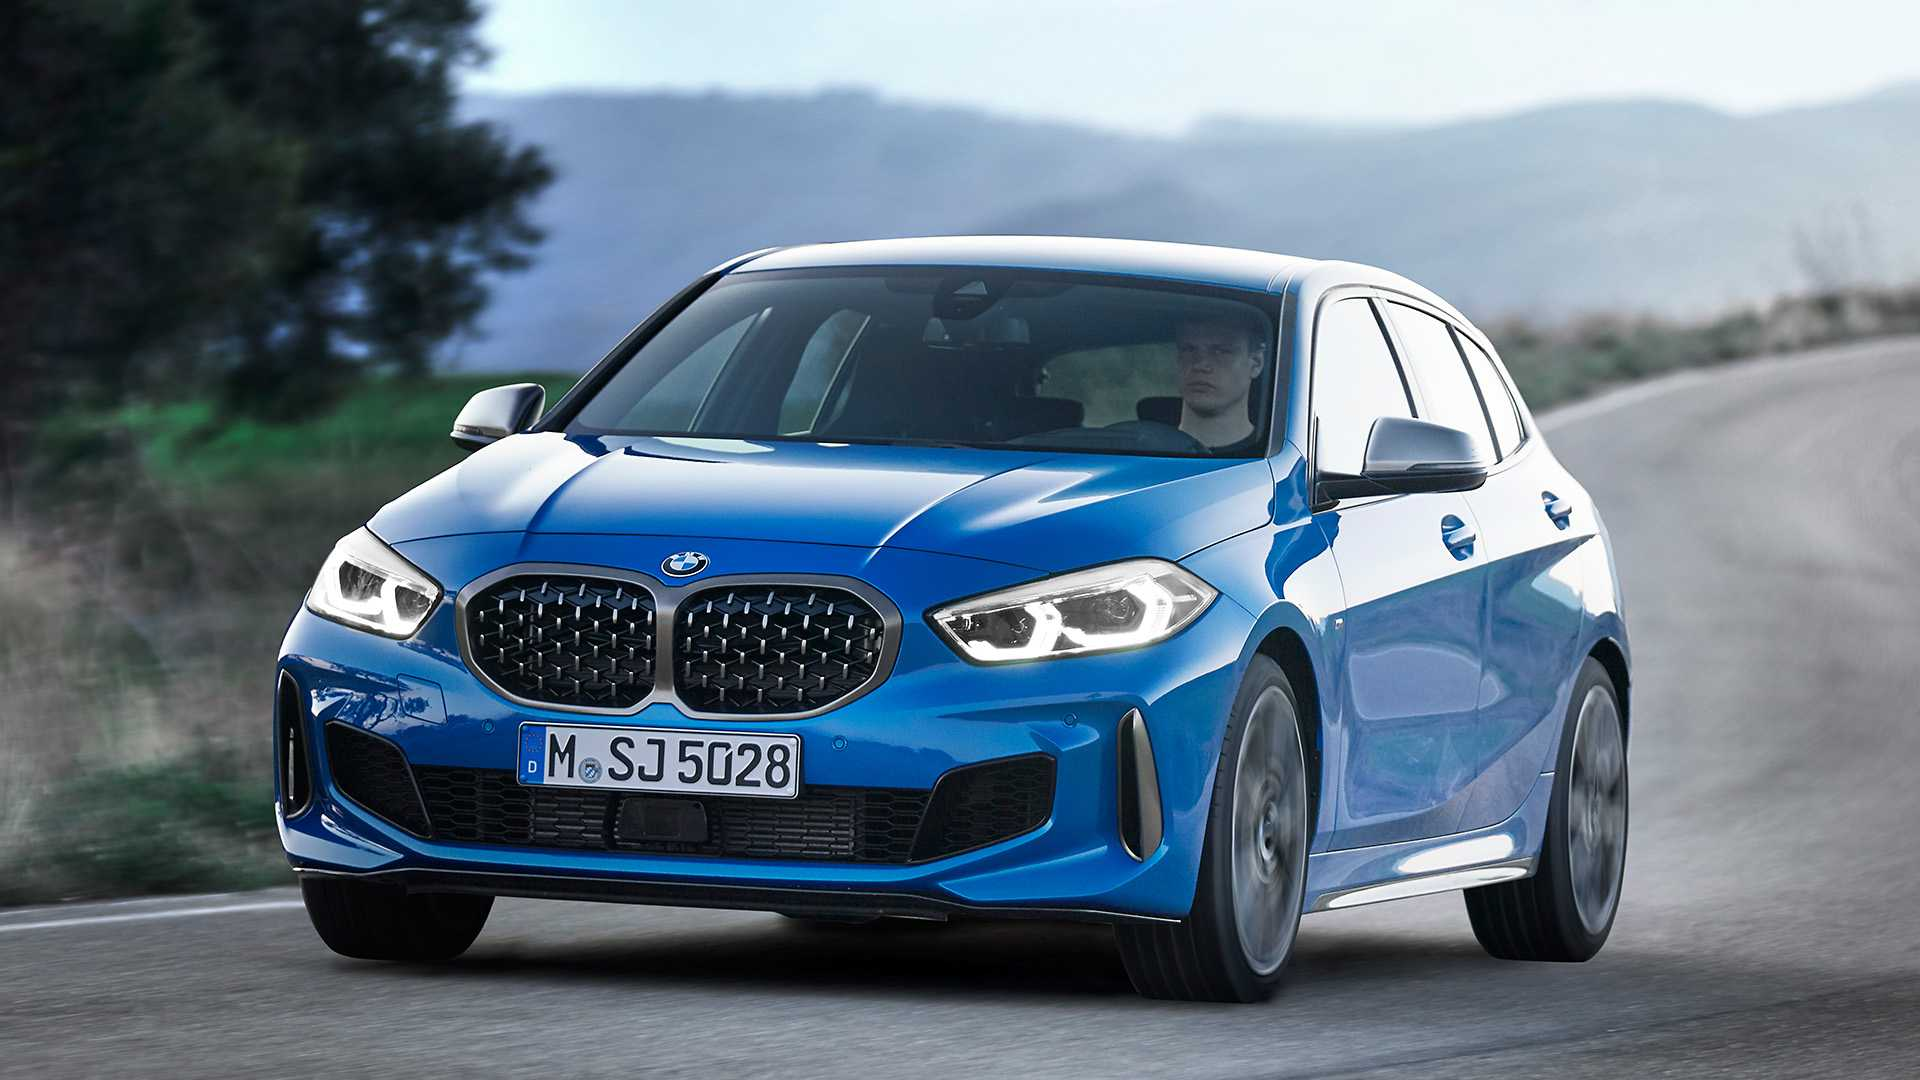 2020 bmw 1 series hatchback debuts with 2.0-liter turbo